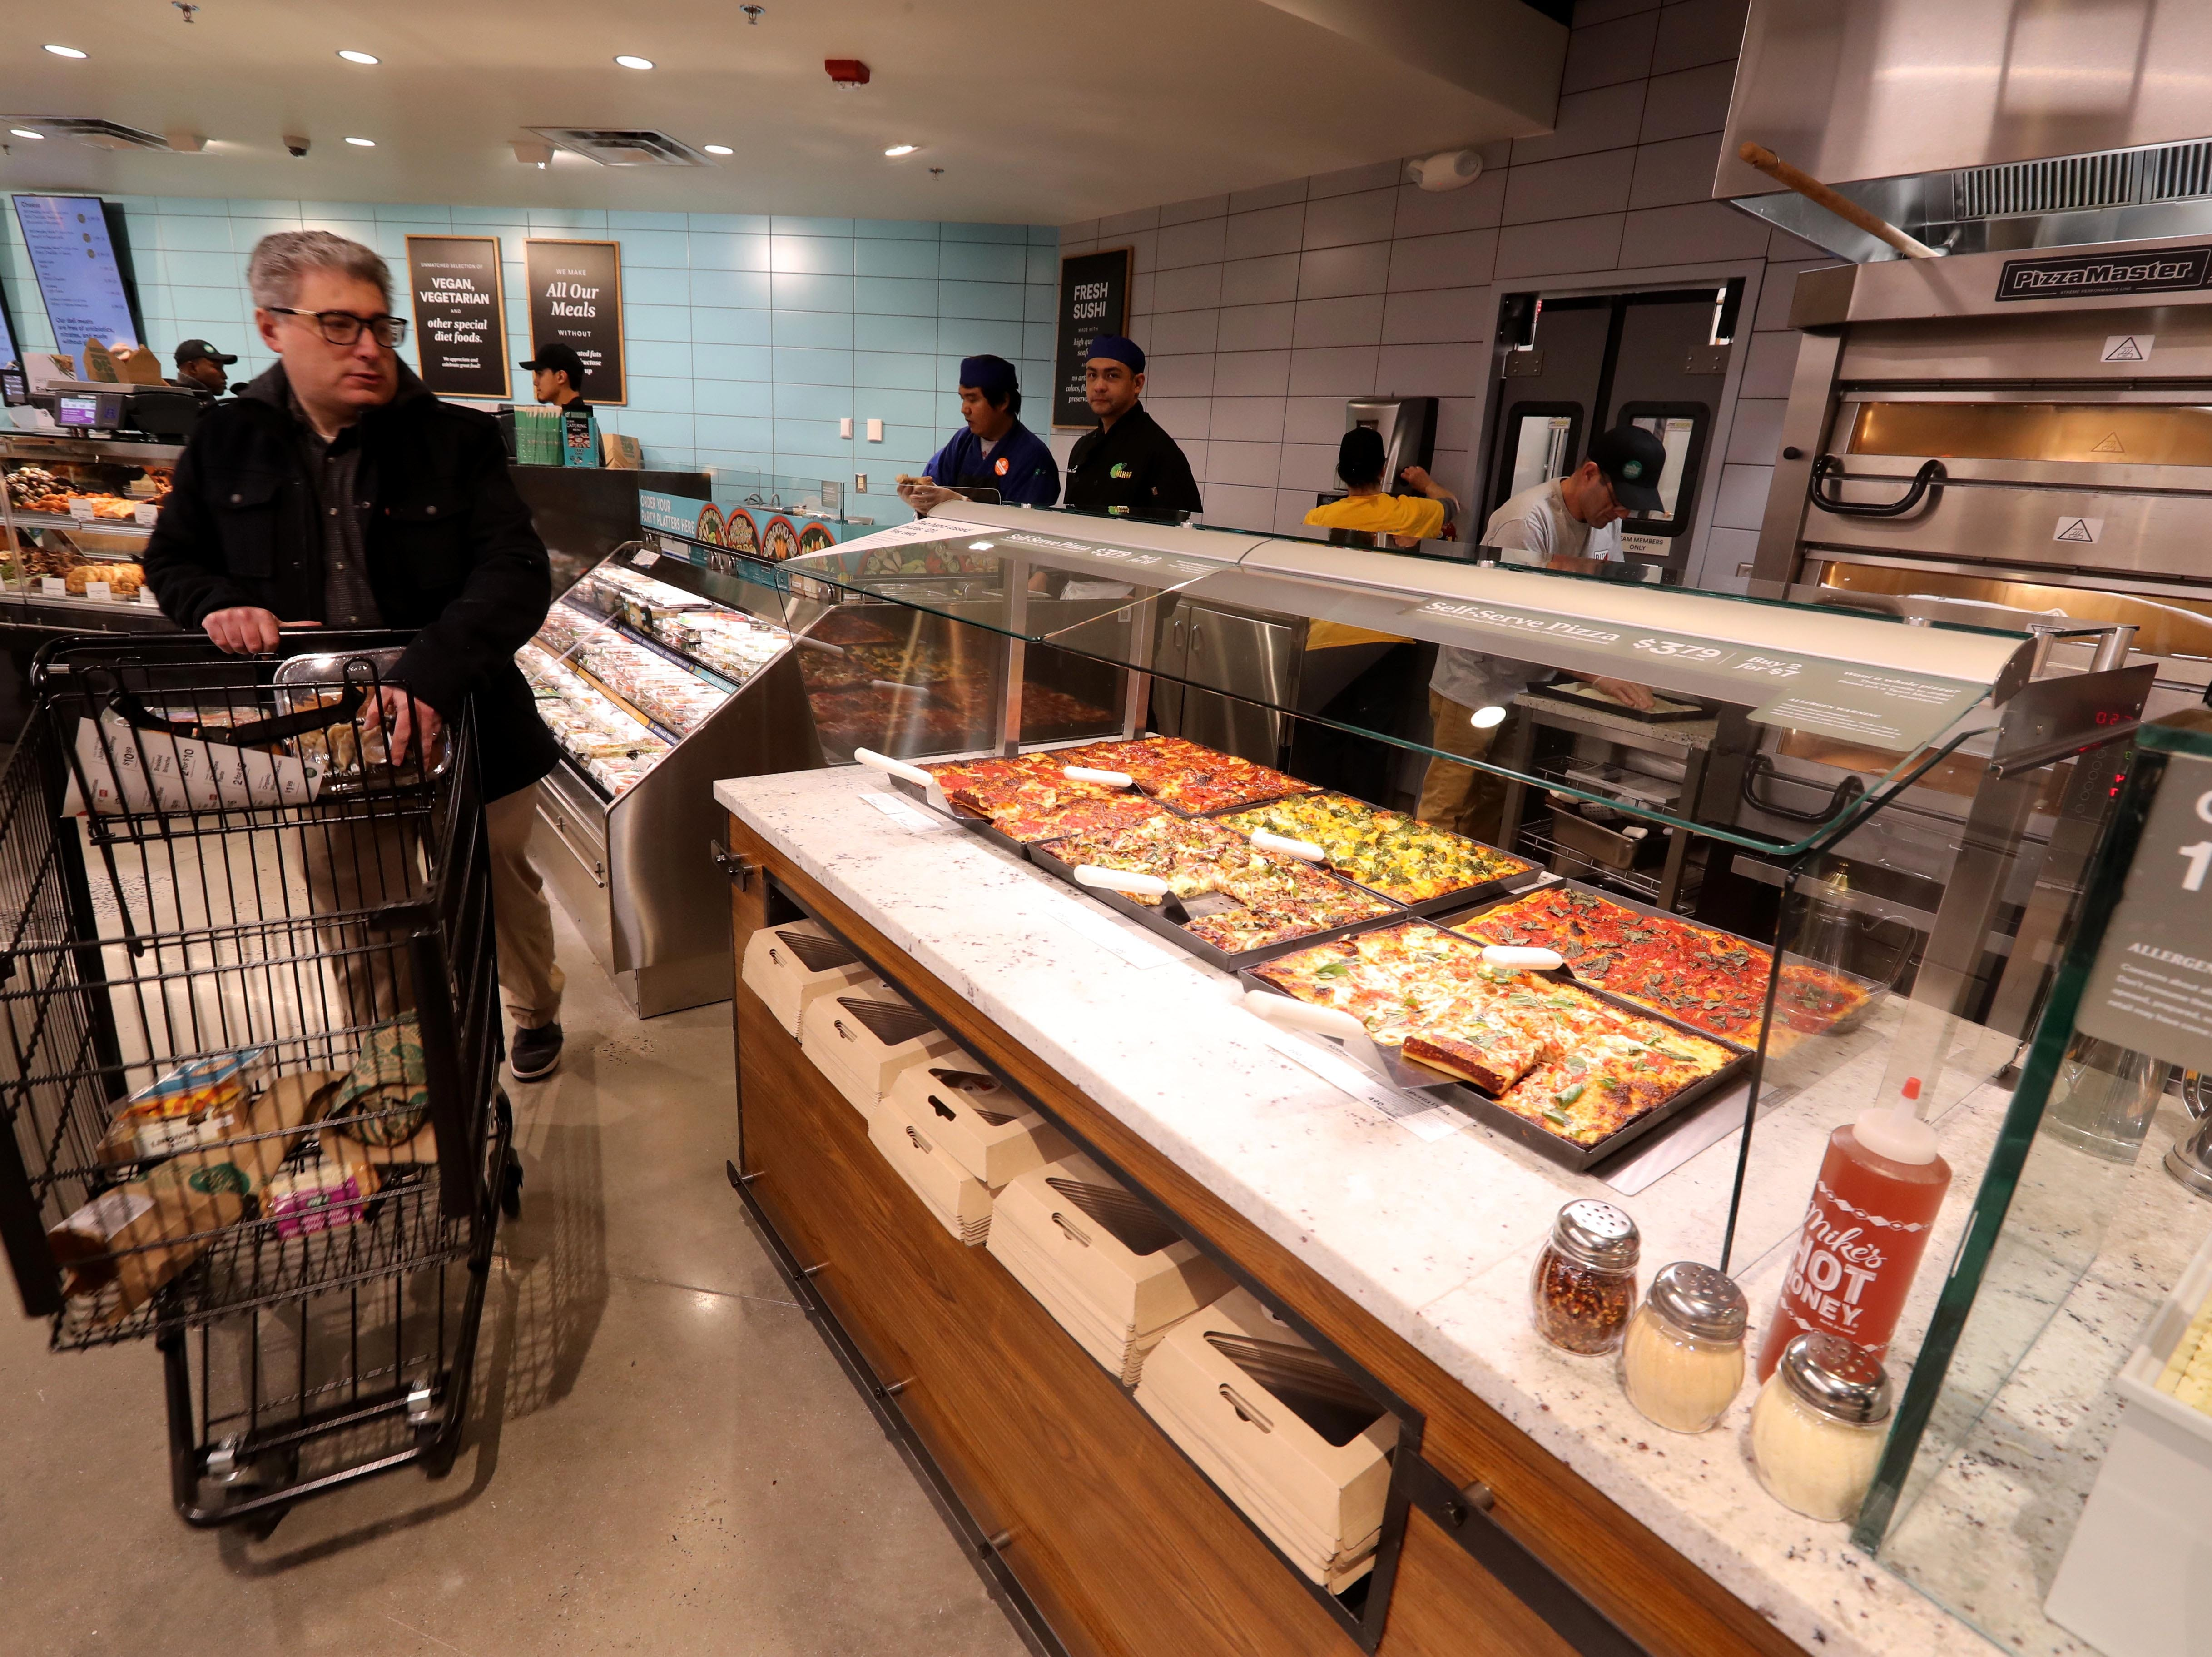 A shopper peruses the self-service pizza buffet at the new Whole Foods in Chappaqua Dec. 15, 2018. The 40,000 square foot store opened to shoppers on the site of the formers Readers Digest headquarters. The New Castle Town Board and Planning Board approved a temporary traffic plan for the Route 117-Roaring Brook Road intersection that allowed the store to open.